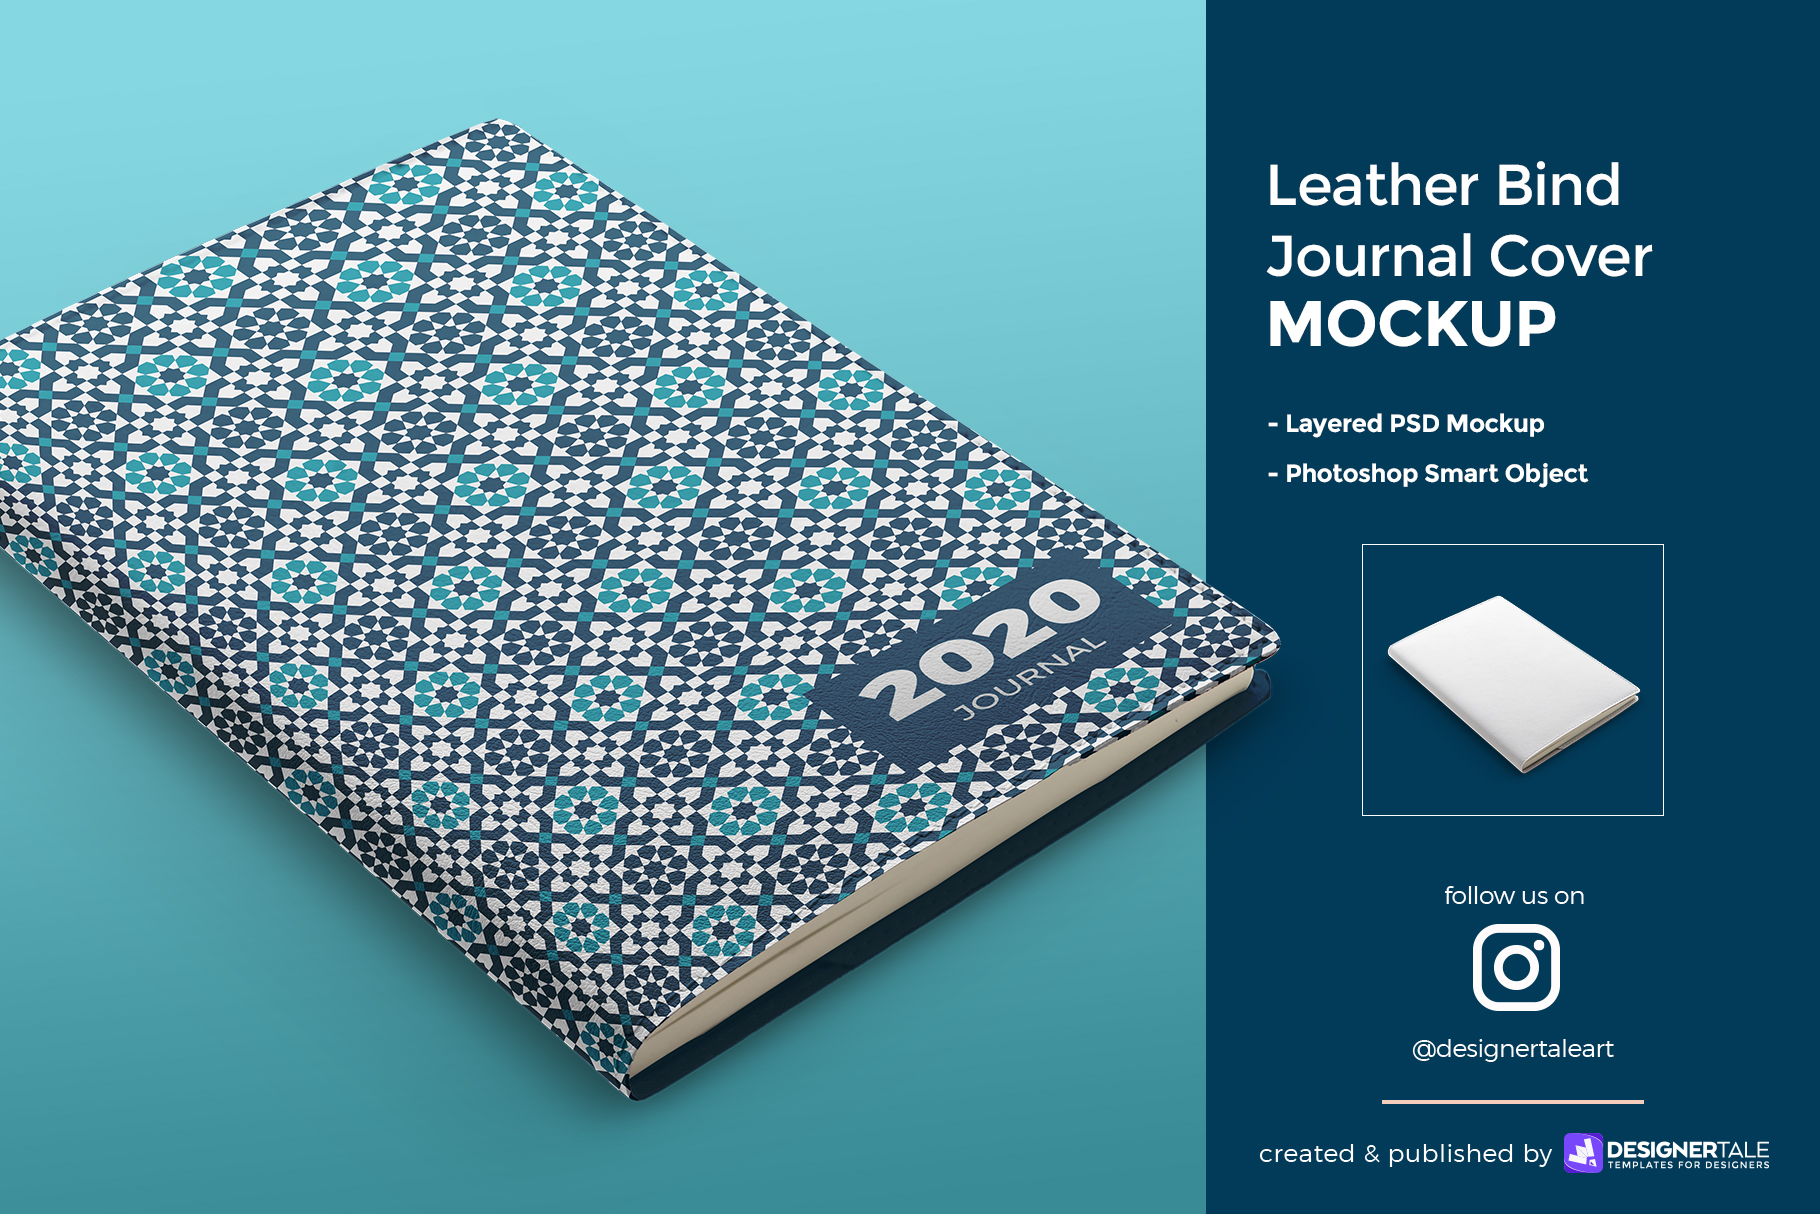 leather bind journal cover mockup